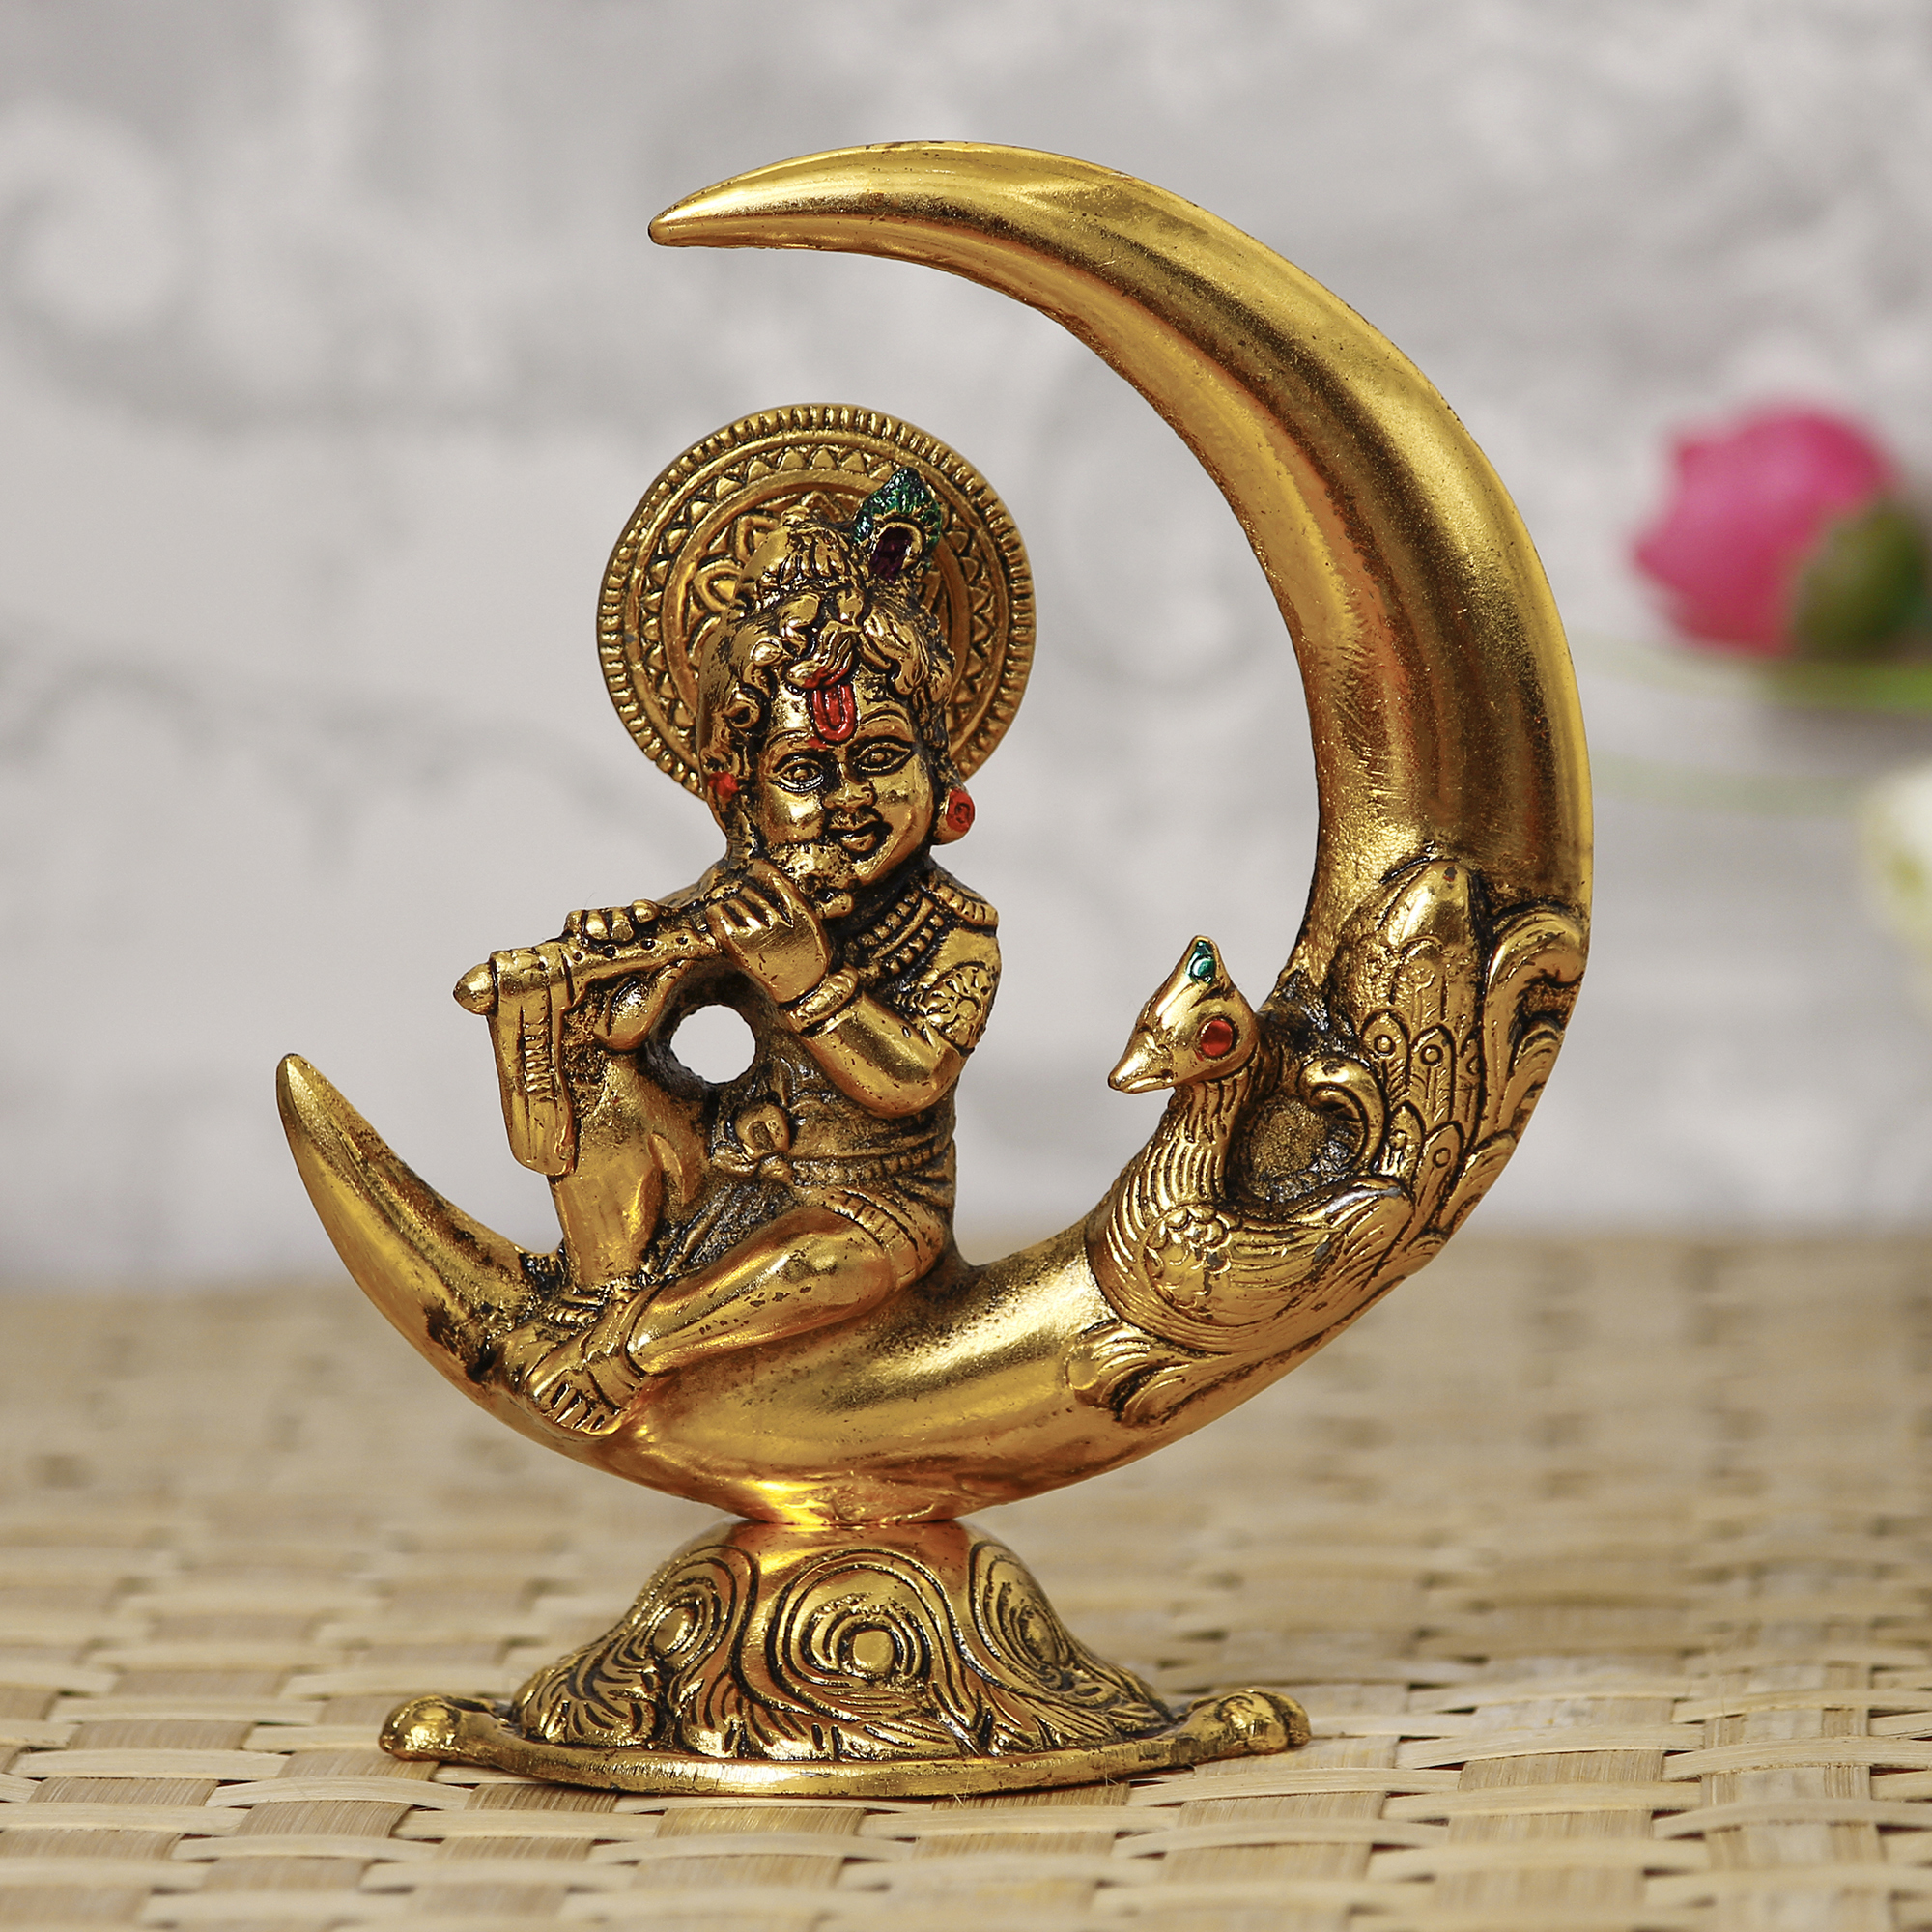 Golden Lord Krishna Idol Metal Decorative Showpiece Indian Home Decor